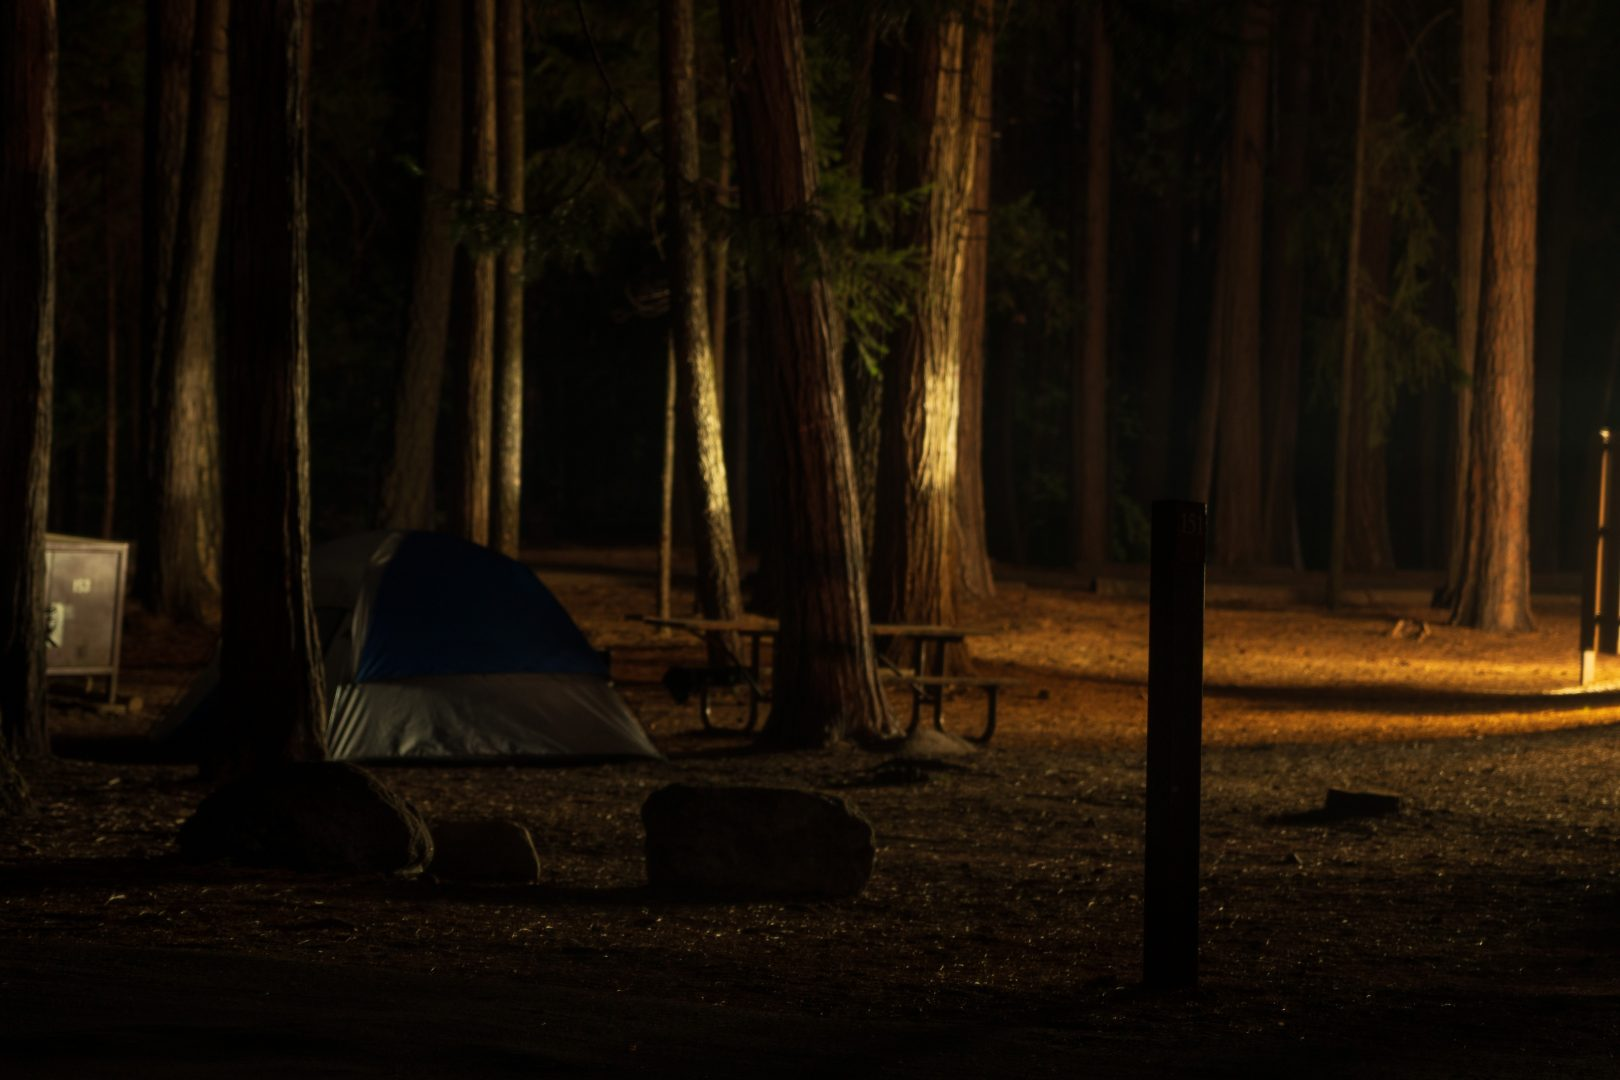 blue tent in the middle of forest during daytime